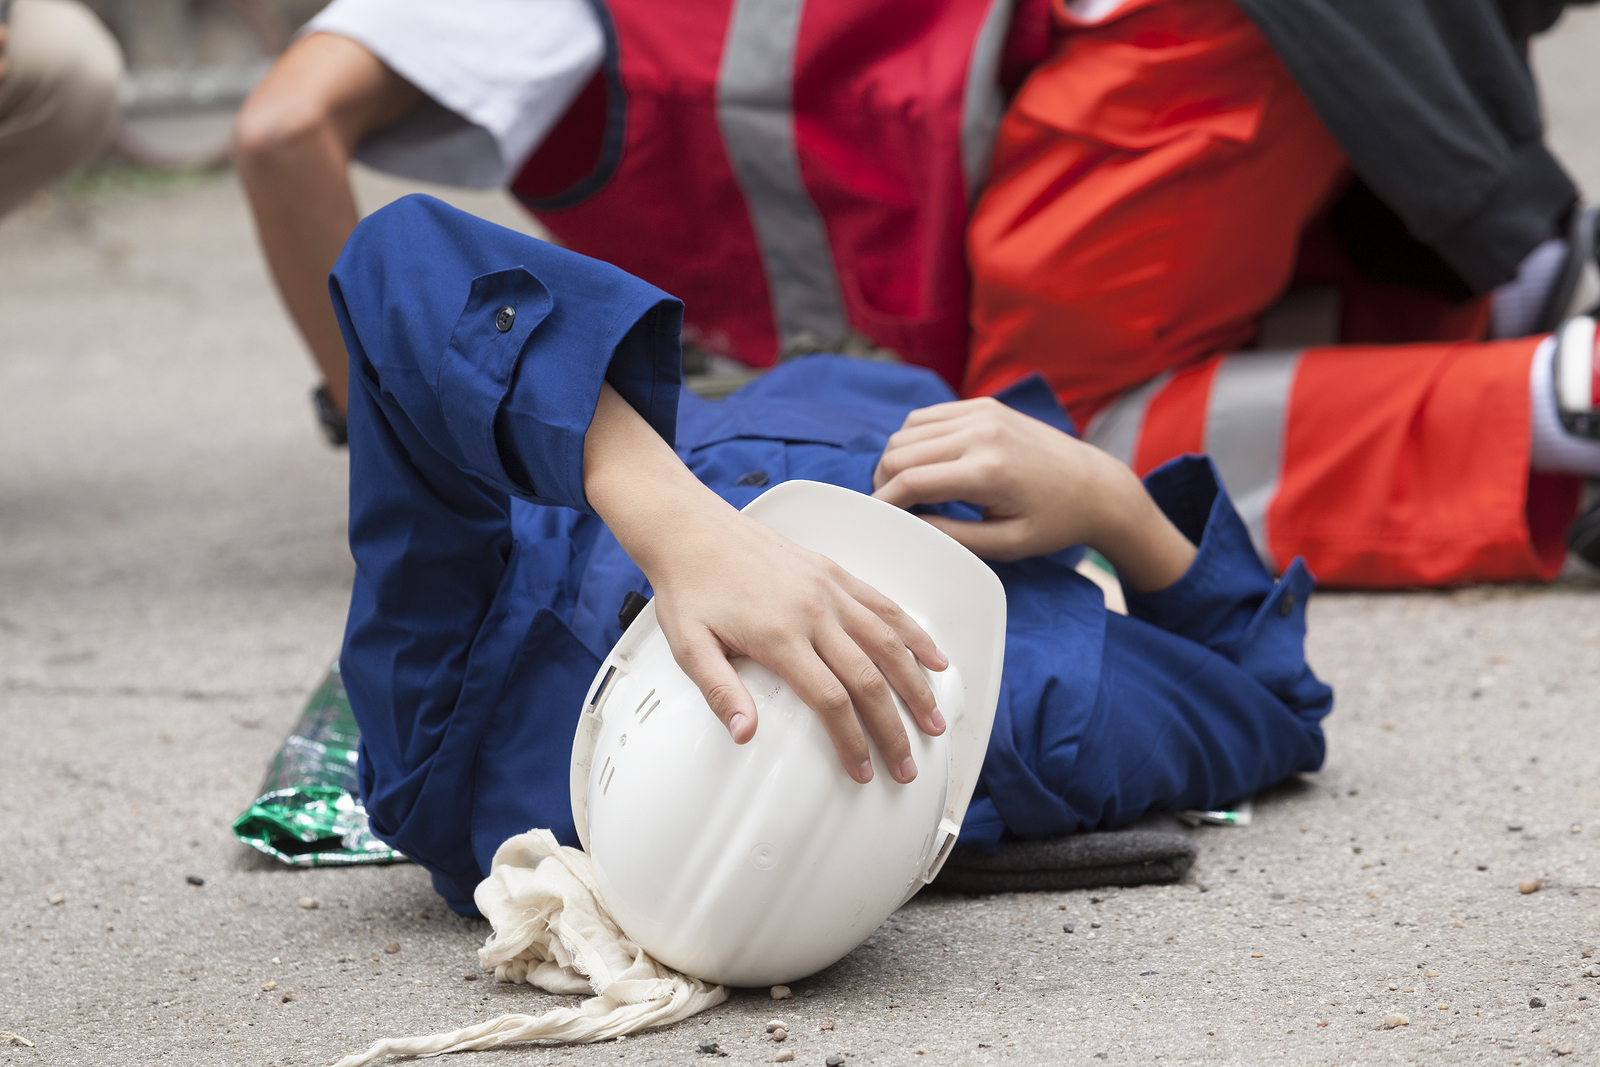 Workers Compensation Rights for Injured